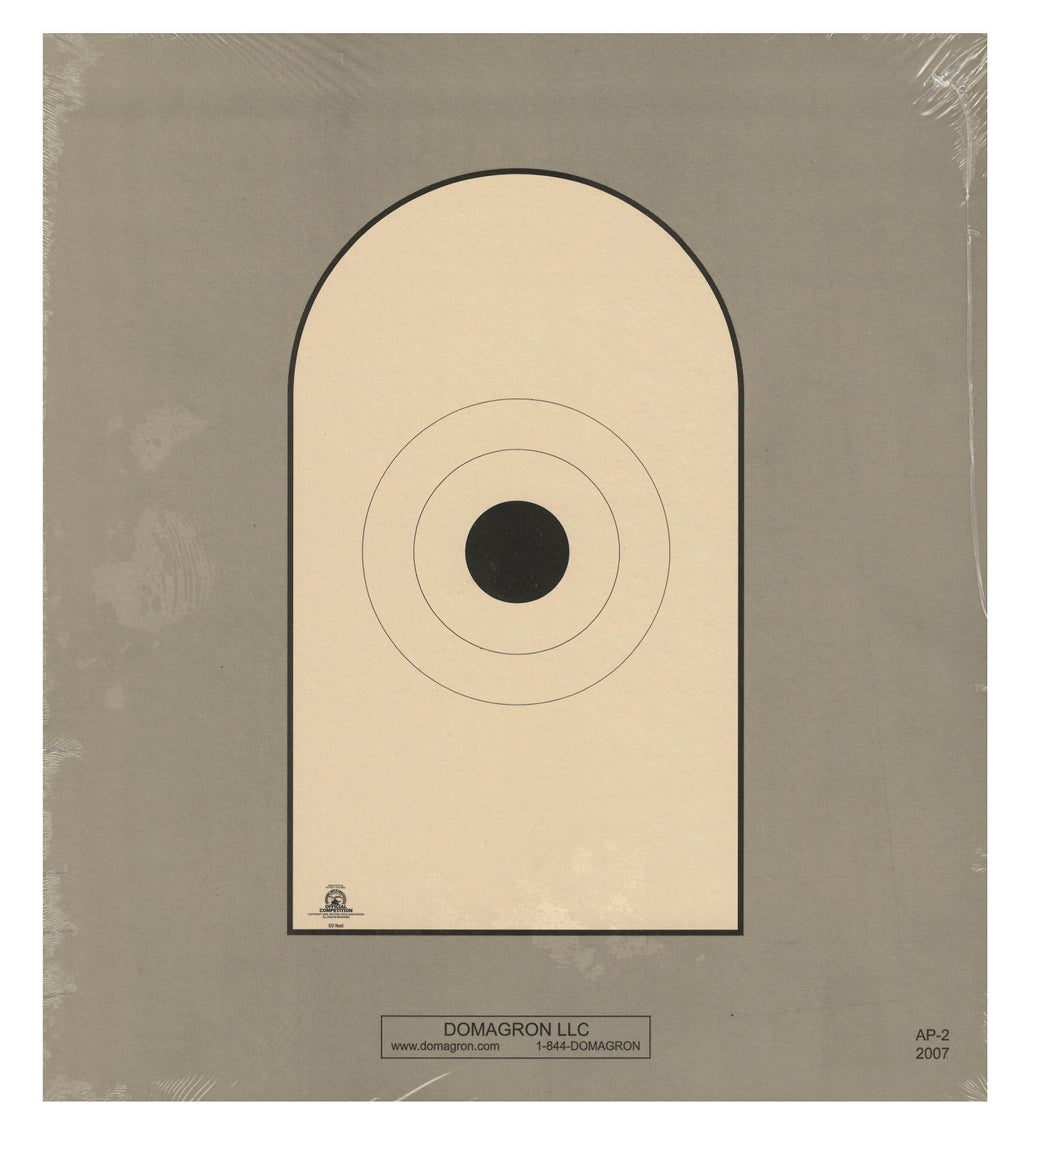 AP-2 - Bianchi Cup Black Center Official 50 Foot Reduction NRA Target of AP-1 Target (Pack of 50) - DOMAGRON